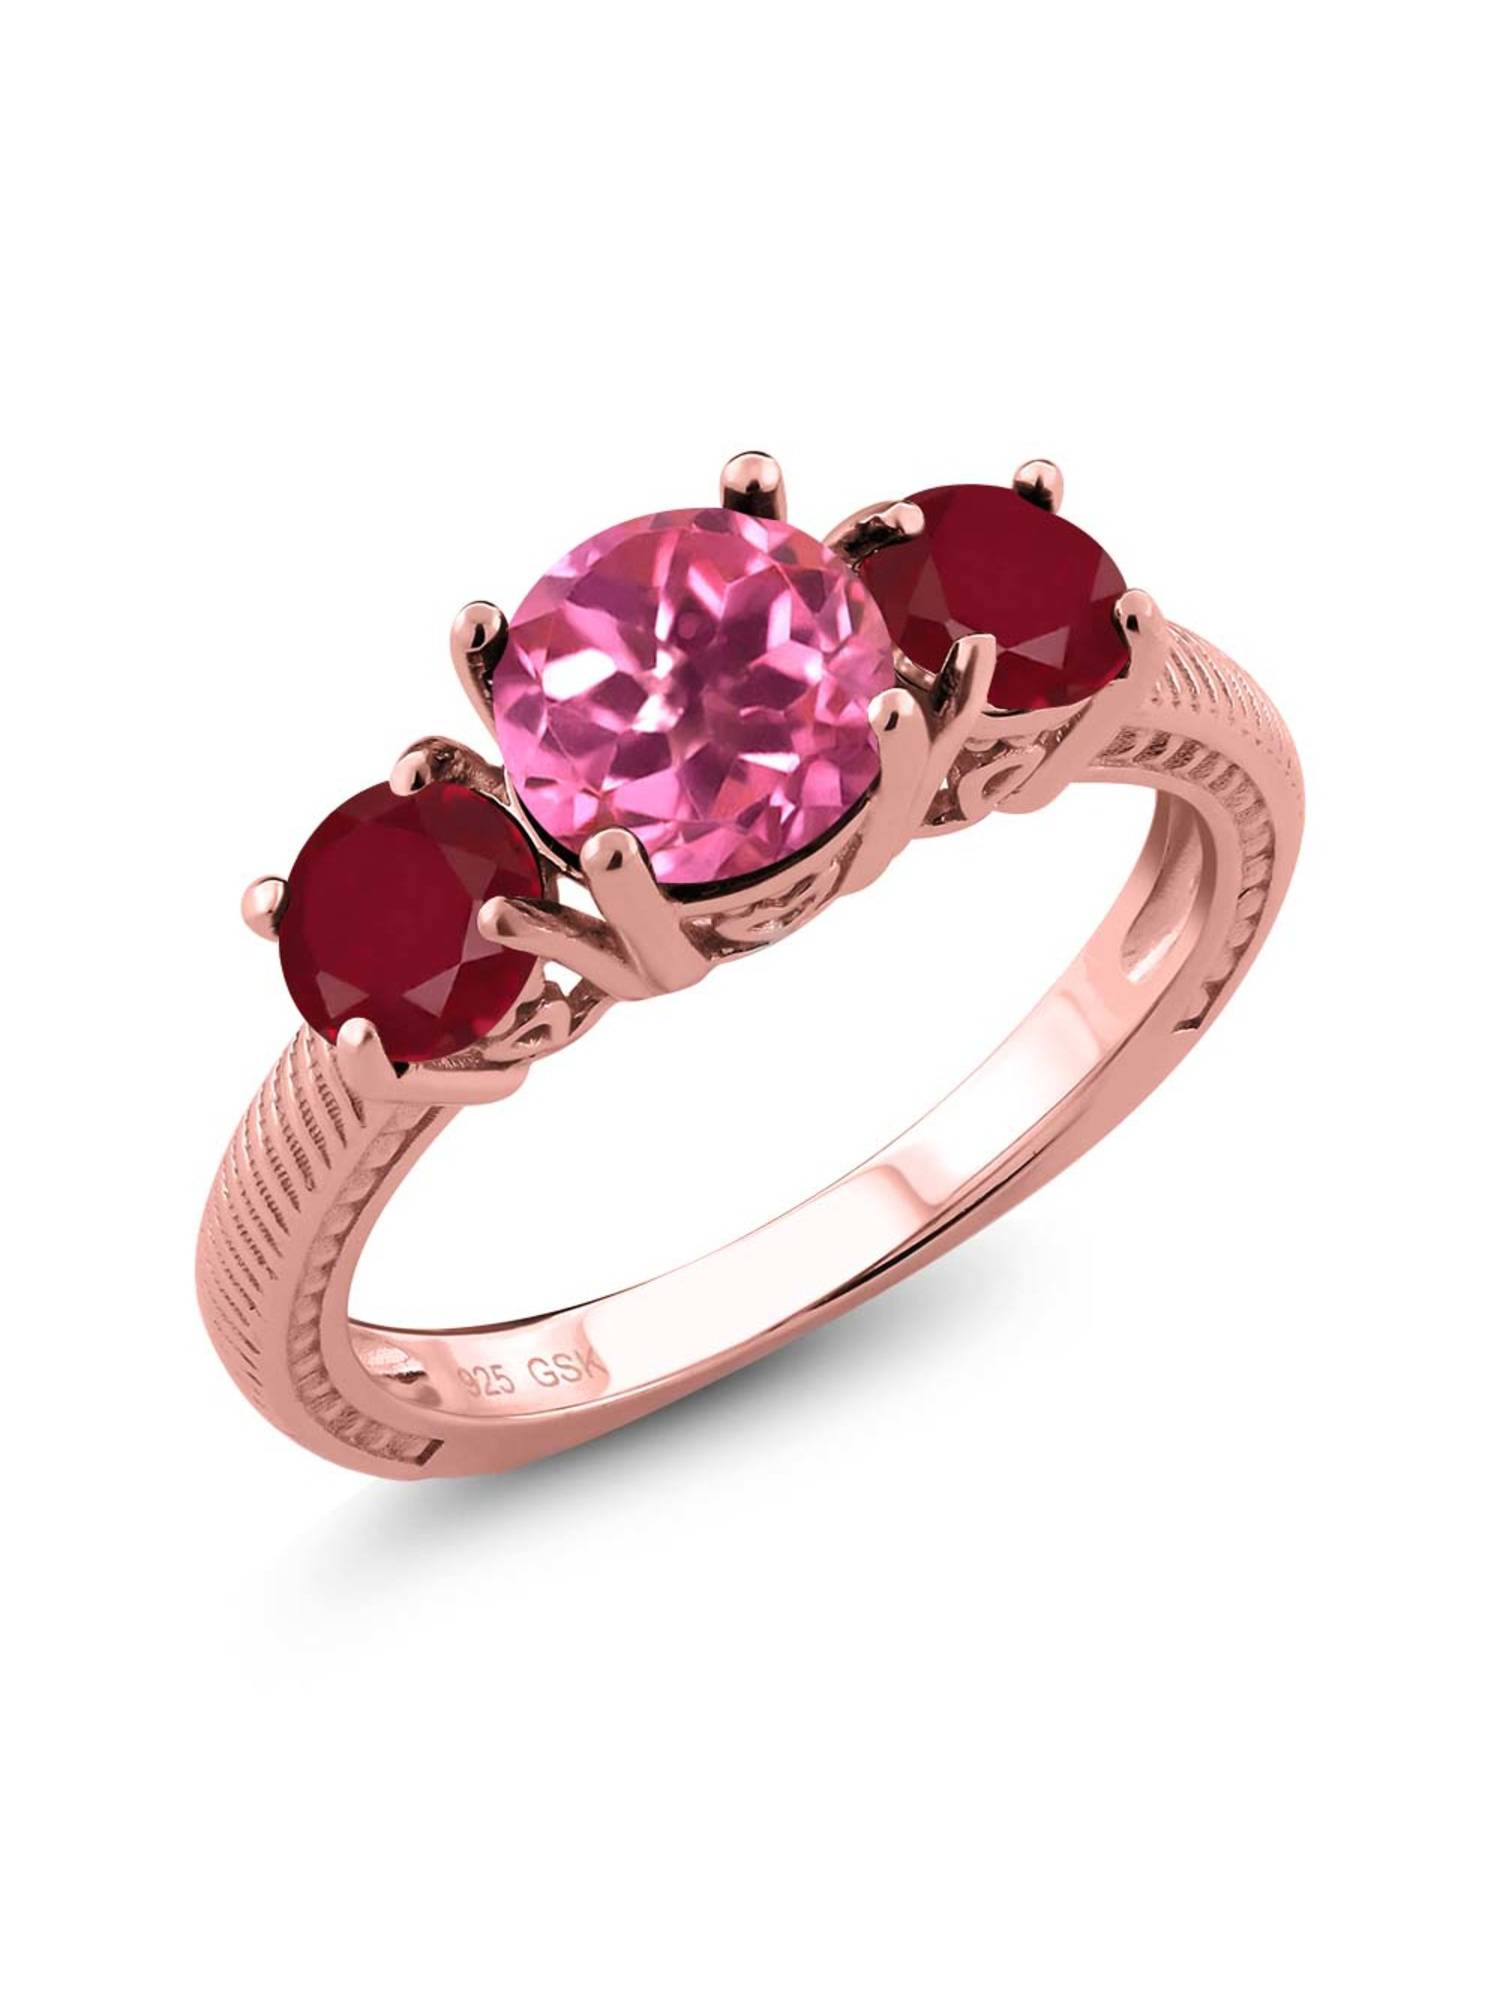 2.40 Ct Round Pink Mystic Topaz Red Ruby 18K Rose Gold Plated Silver 3 Stone Ring by